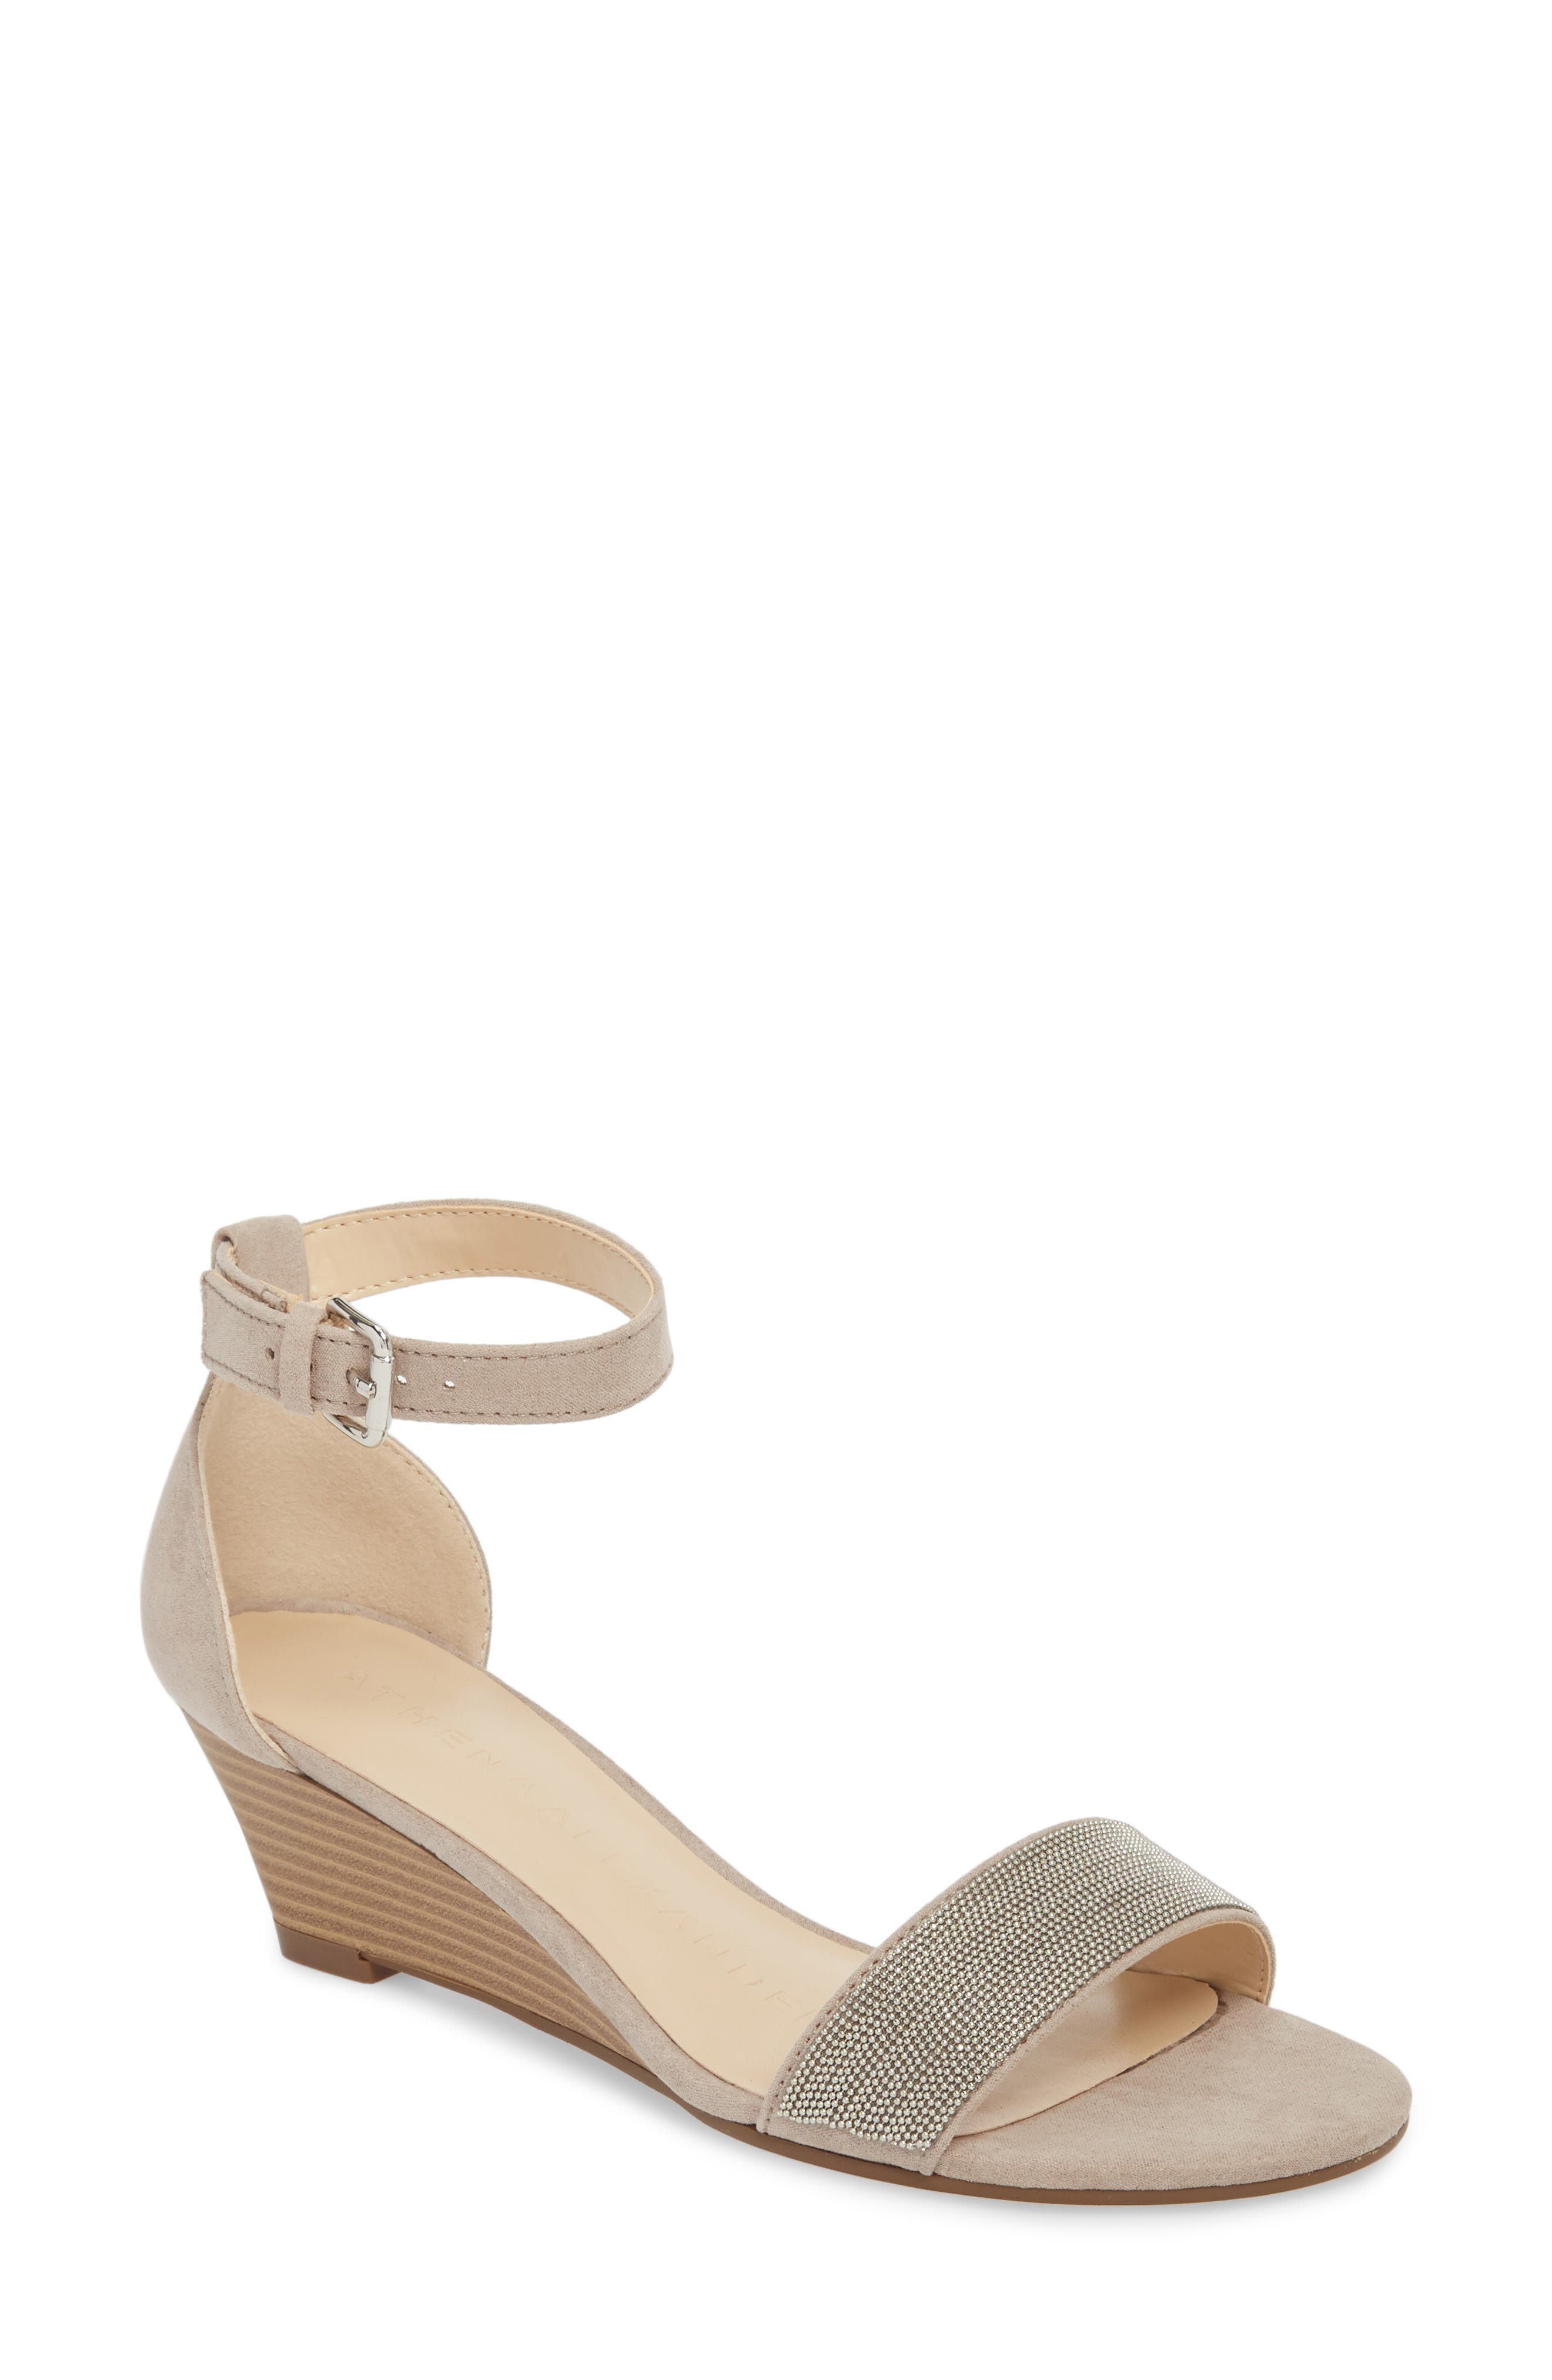 Alternate Image 1 Selected - Athena Alexander Enfield Ankle Strap Wedge Sandal (Women)